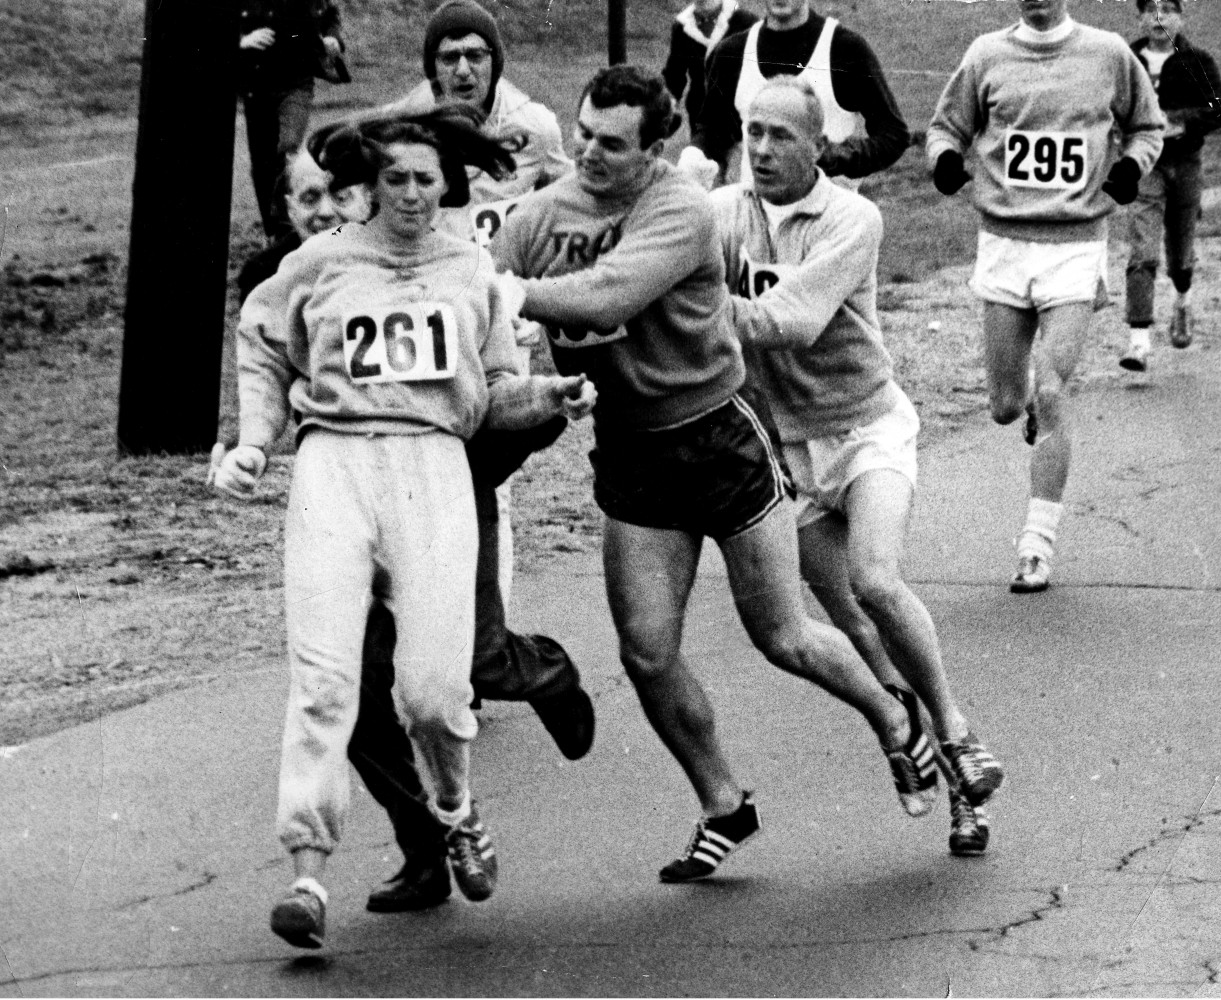 Get The Hell Out Of My Race: The First Woman To Run The Boston Marathon On How Shes Silenced Critics Over The Years